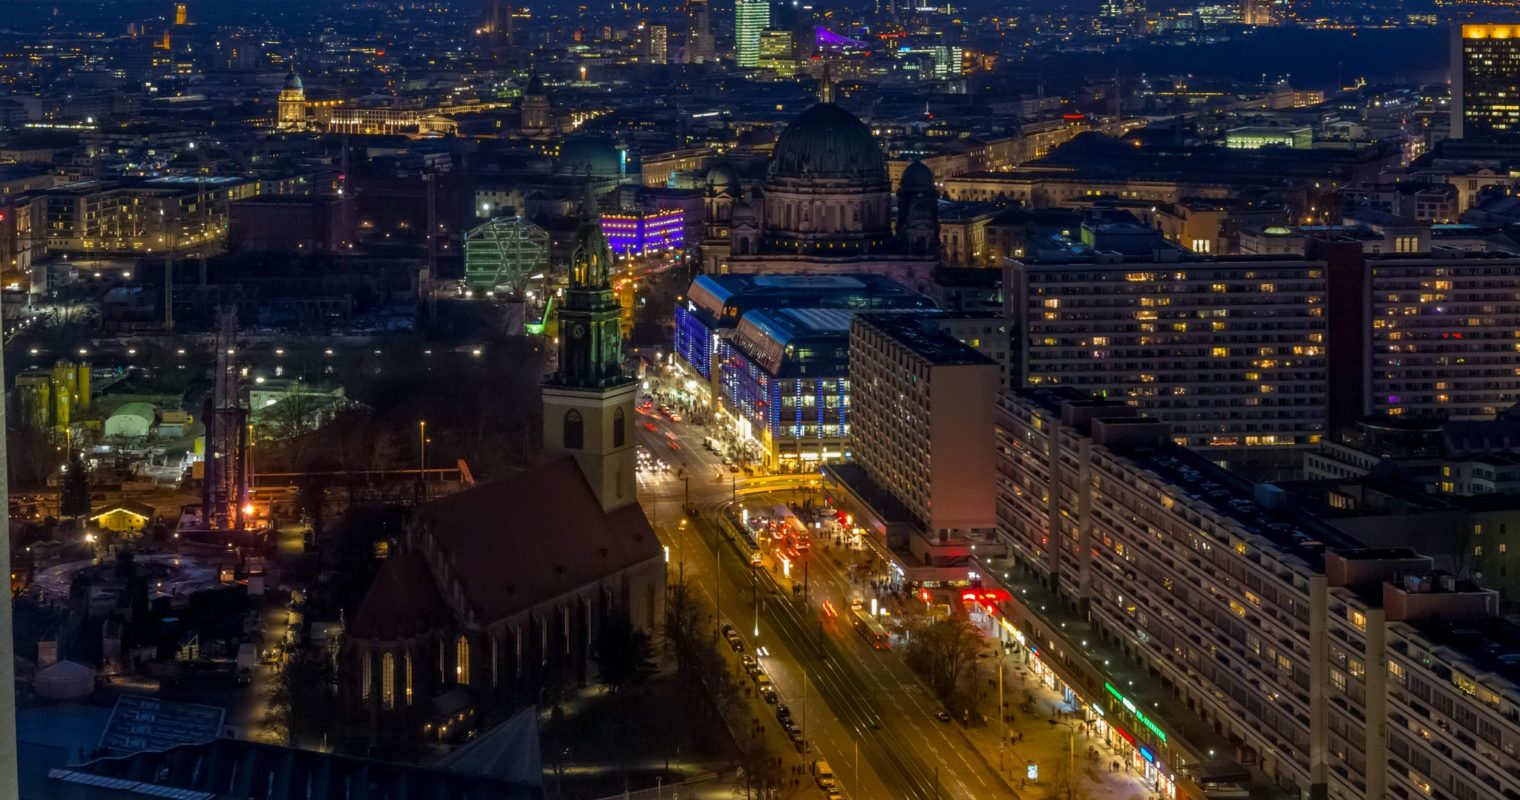 European Search Awards To Be Held In Berlin In April 2015, Now Taking Entries